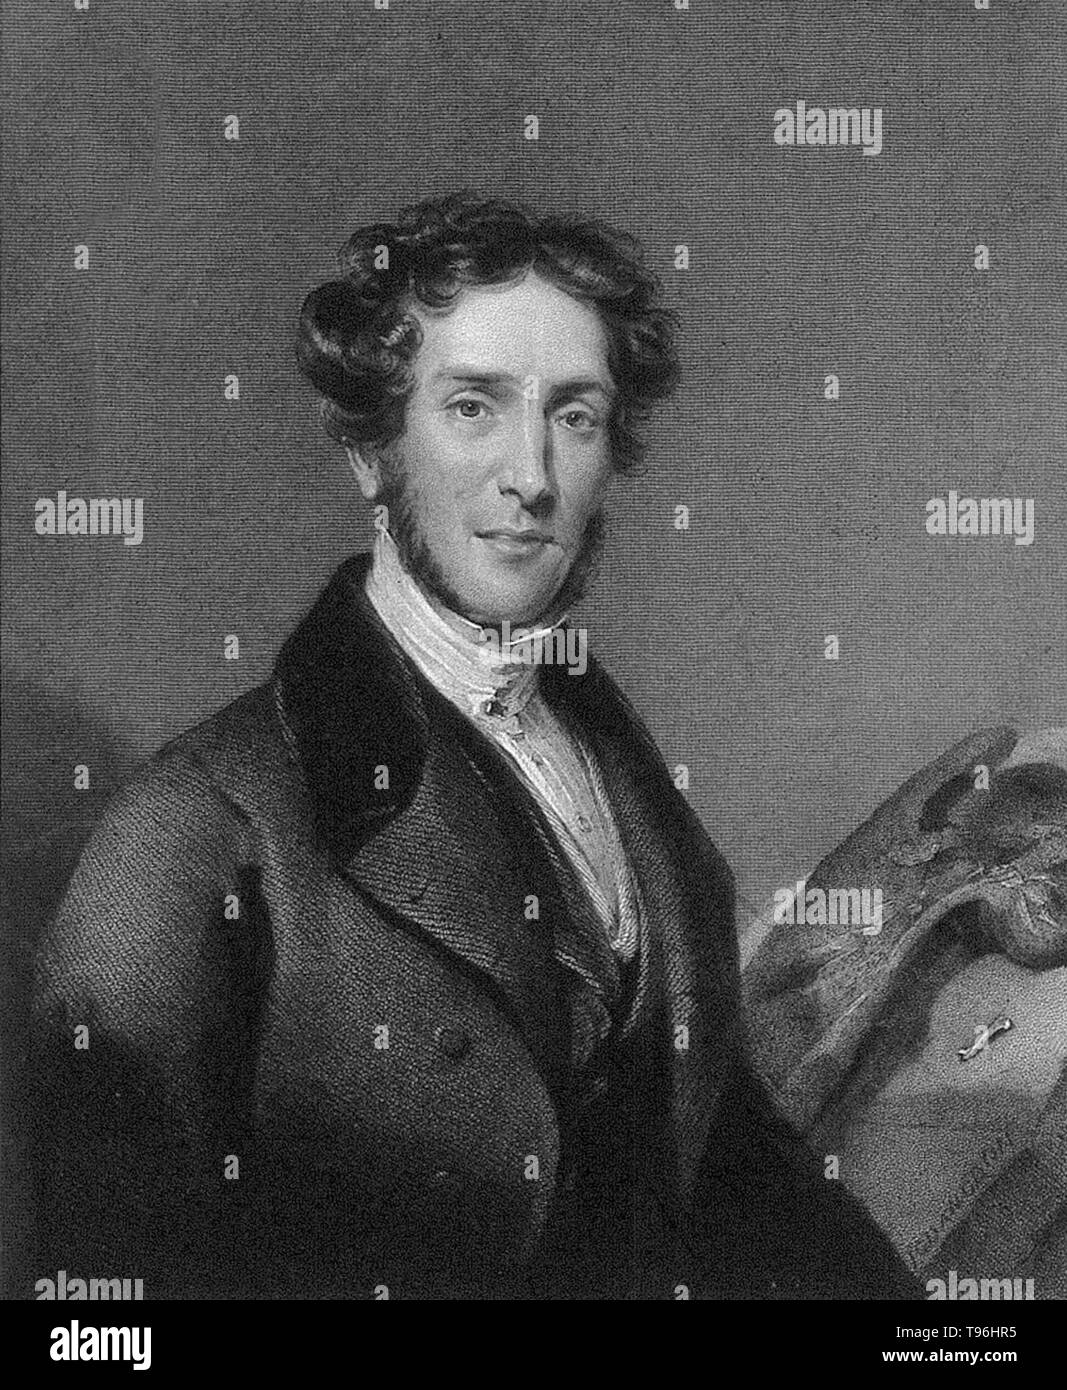 Gideon Algernon Mantell (February 3, 1790 -  November 10, 1852) was an English obstetrician, geologist and paleontologist. His attempts to reconstruct the structure and life of Iguanodon began the scientific study of dinosaurs: in 1822  he was responsible for the discovery (and the eventual identification) of the first fossil teeth, and later much of the skeleton, of Iguanodon. In 1841 Mantell was the victim of a terrible carriage accident on Clapham Common. Somehow he fell from his seat, became entangled in the reins and was dragged across the ground. He suffered a debilitating spinal injury. - Stock Image